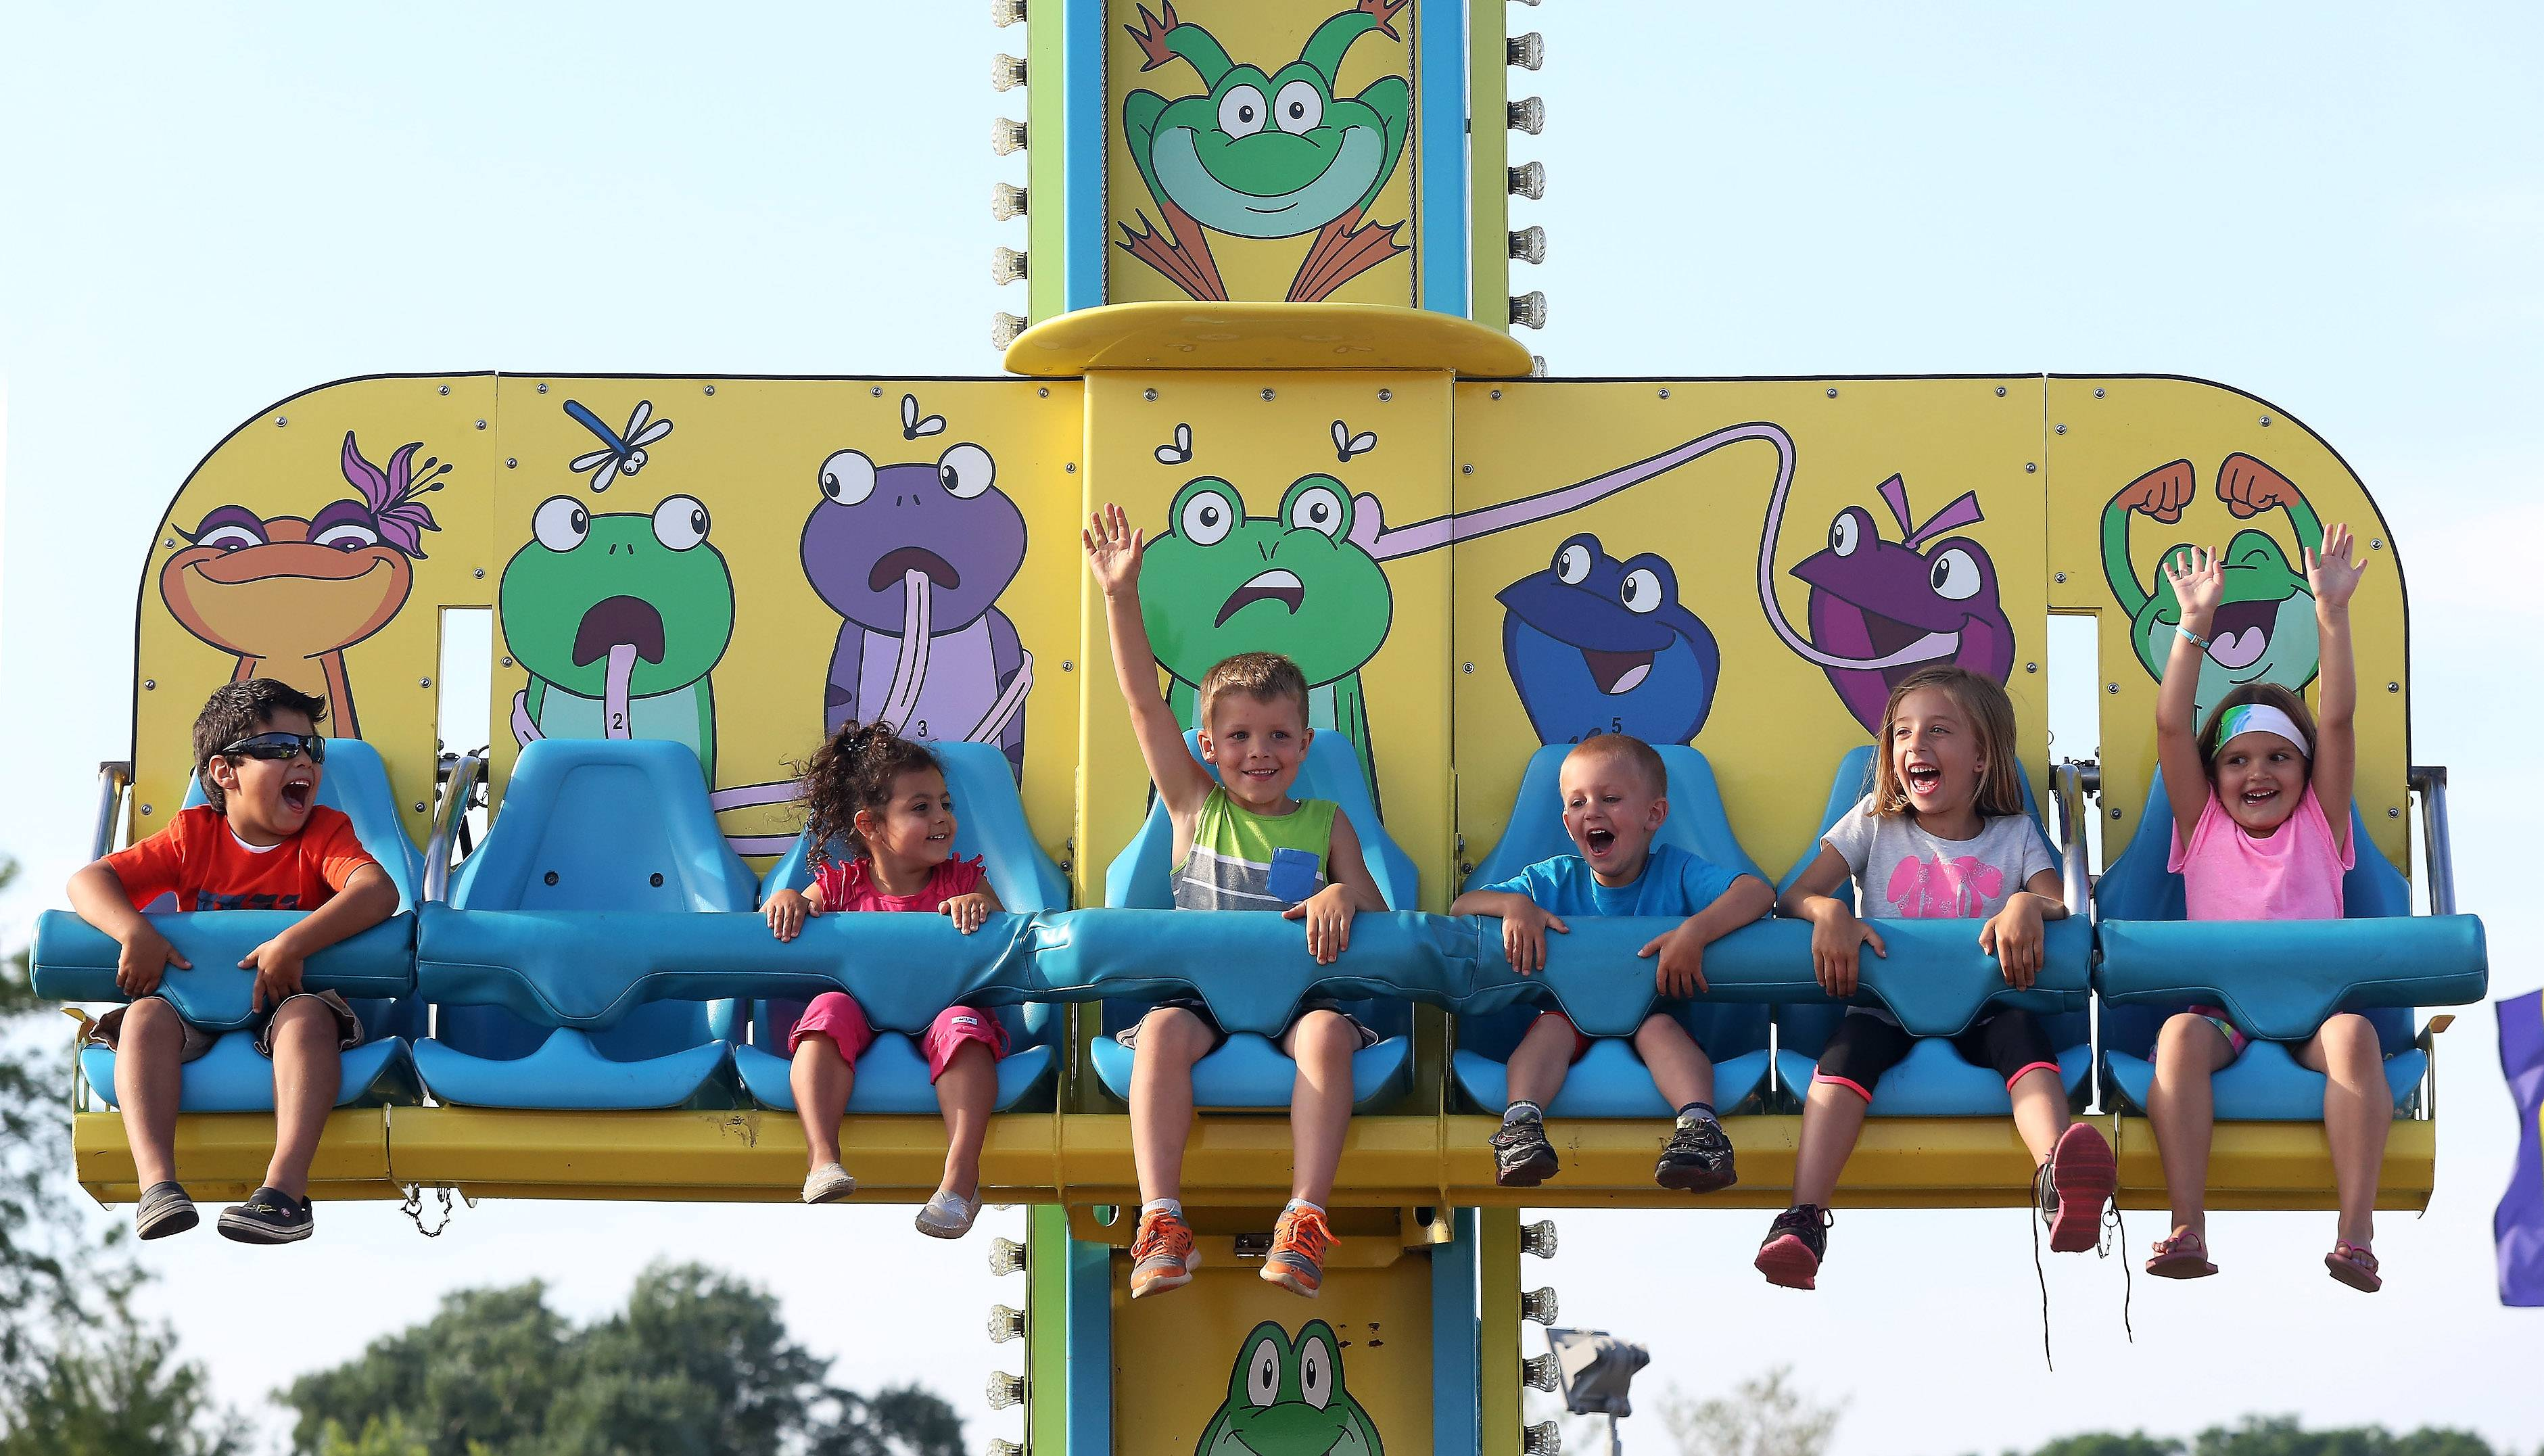 Children have fun on the Frog Hopper ride during the first day of the 35th annual Wauconda Fest at Cook Park on Thursday. The festival featured carnival rides, food tent, wine and cheese tasting, and musical entertainment.